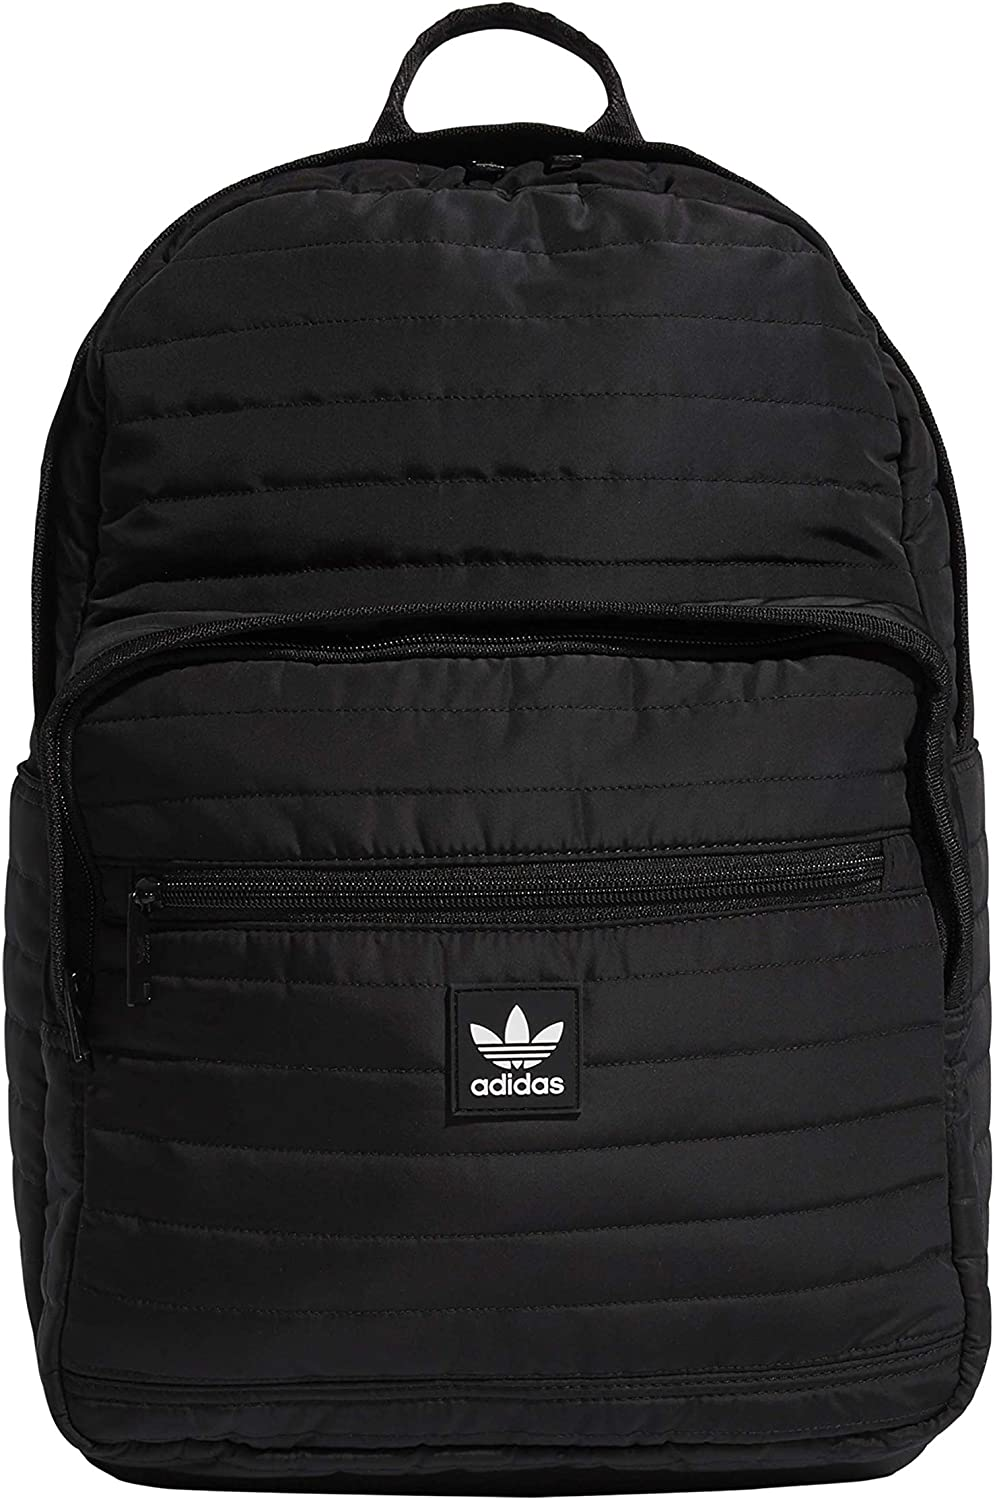 Adidas unisex-adult Quilted Trefoil Backpack